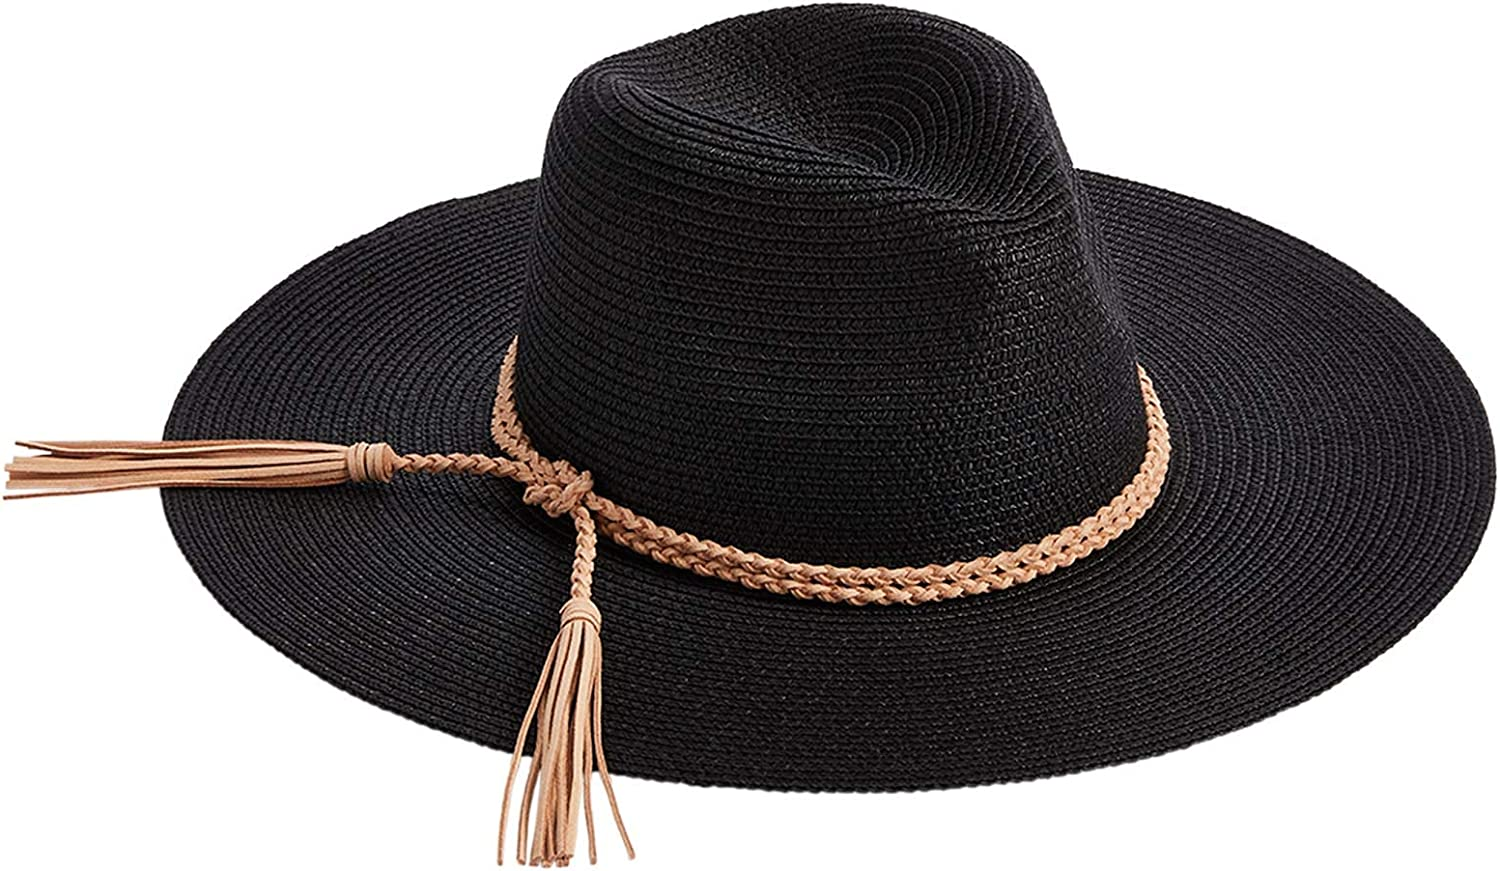 Mud Pie Women's Braided Fedora 2021new shipping Free shipping anywhere in the nation free Tassel